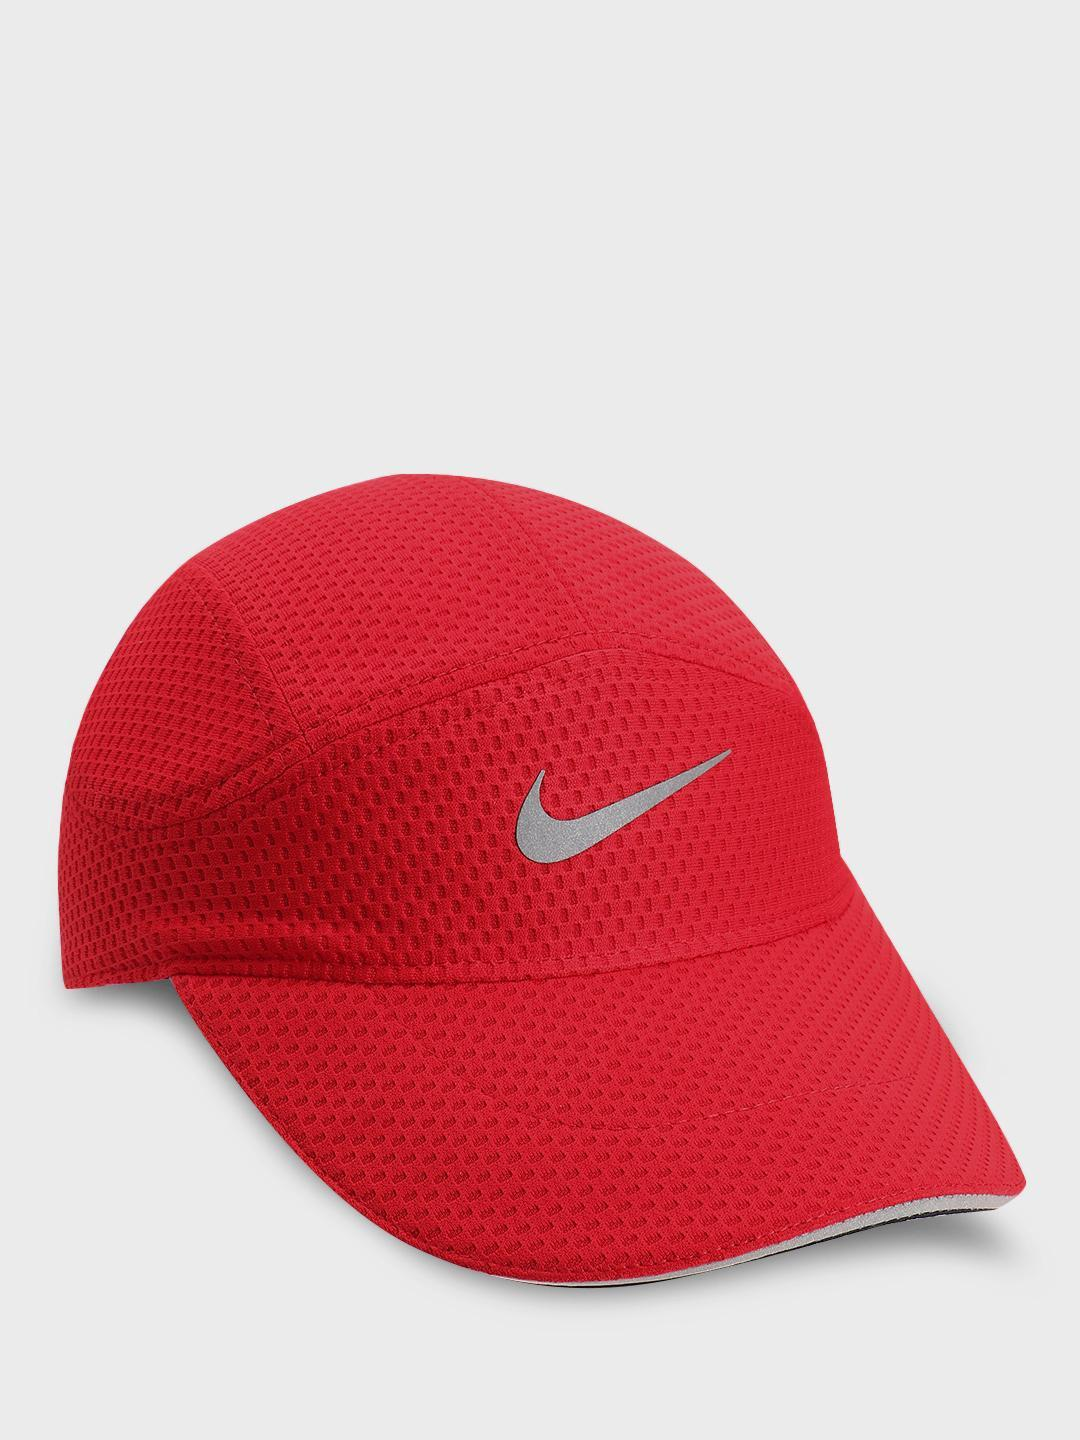 Nike Red Dry AeroBill Tailwind Cap 1